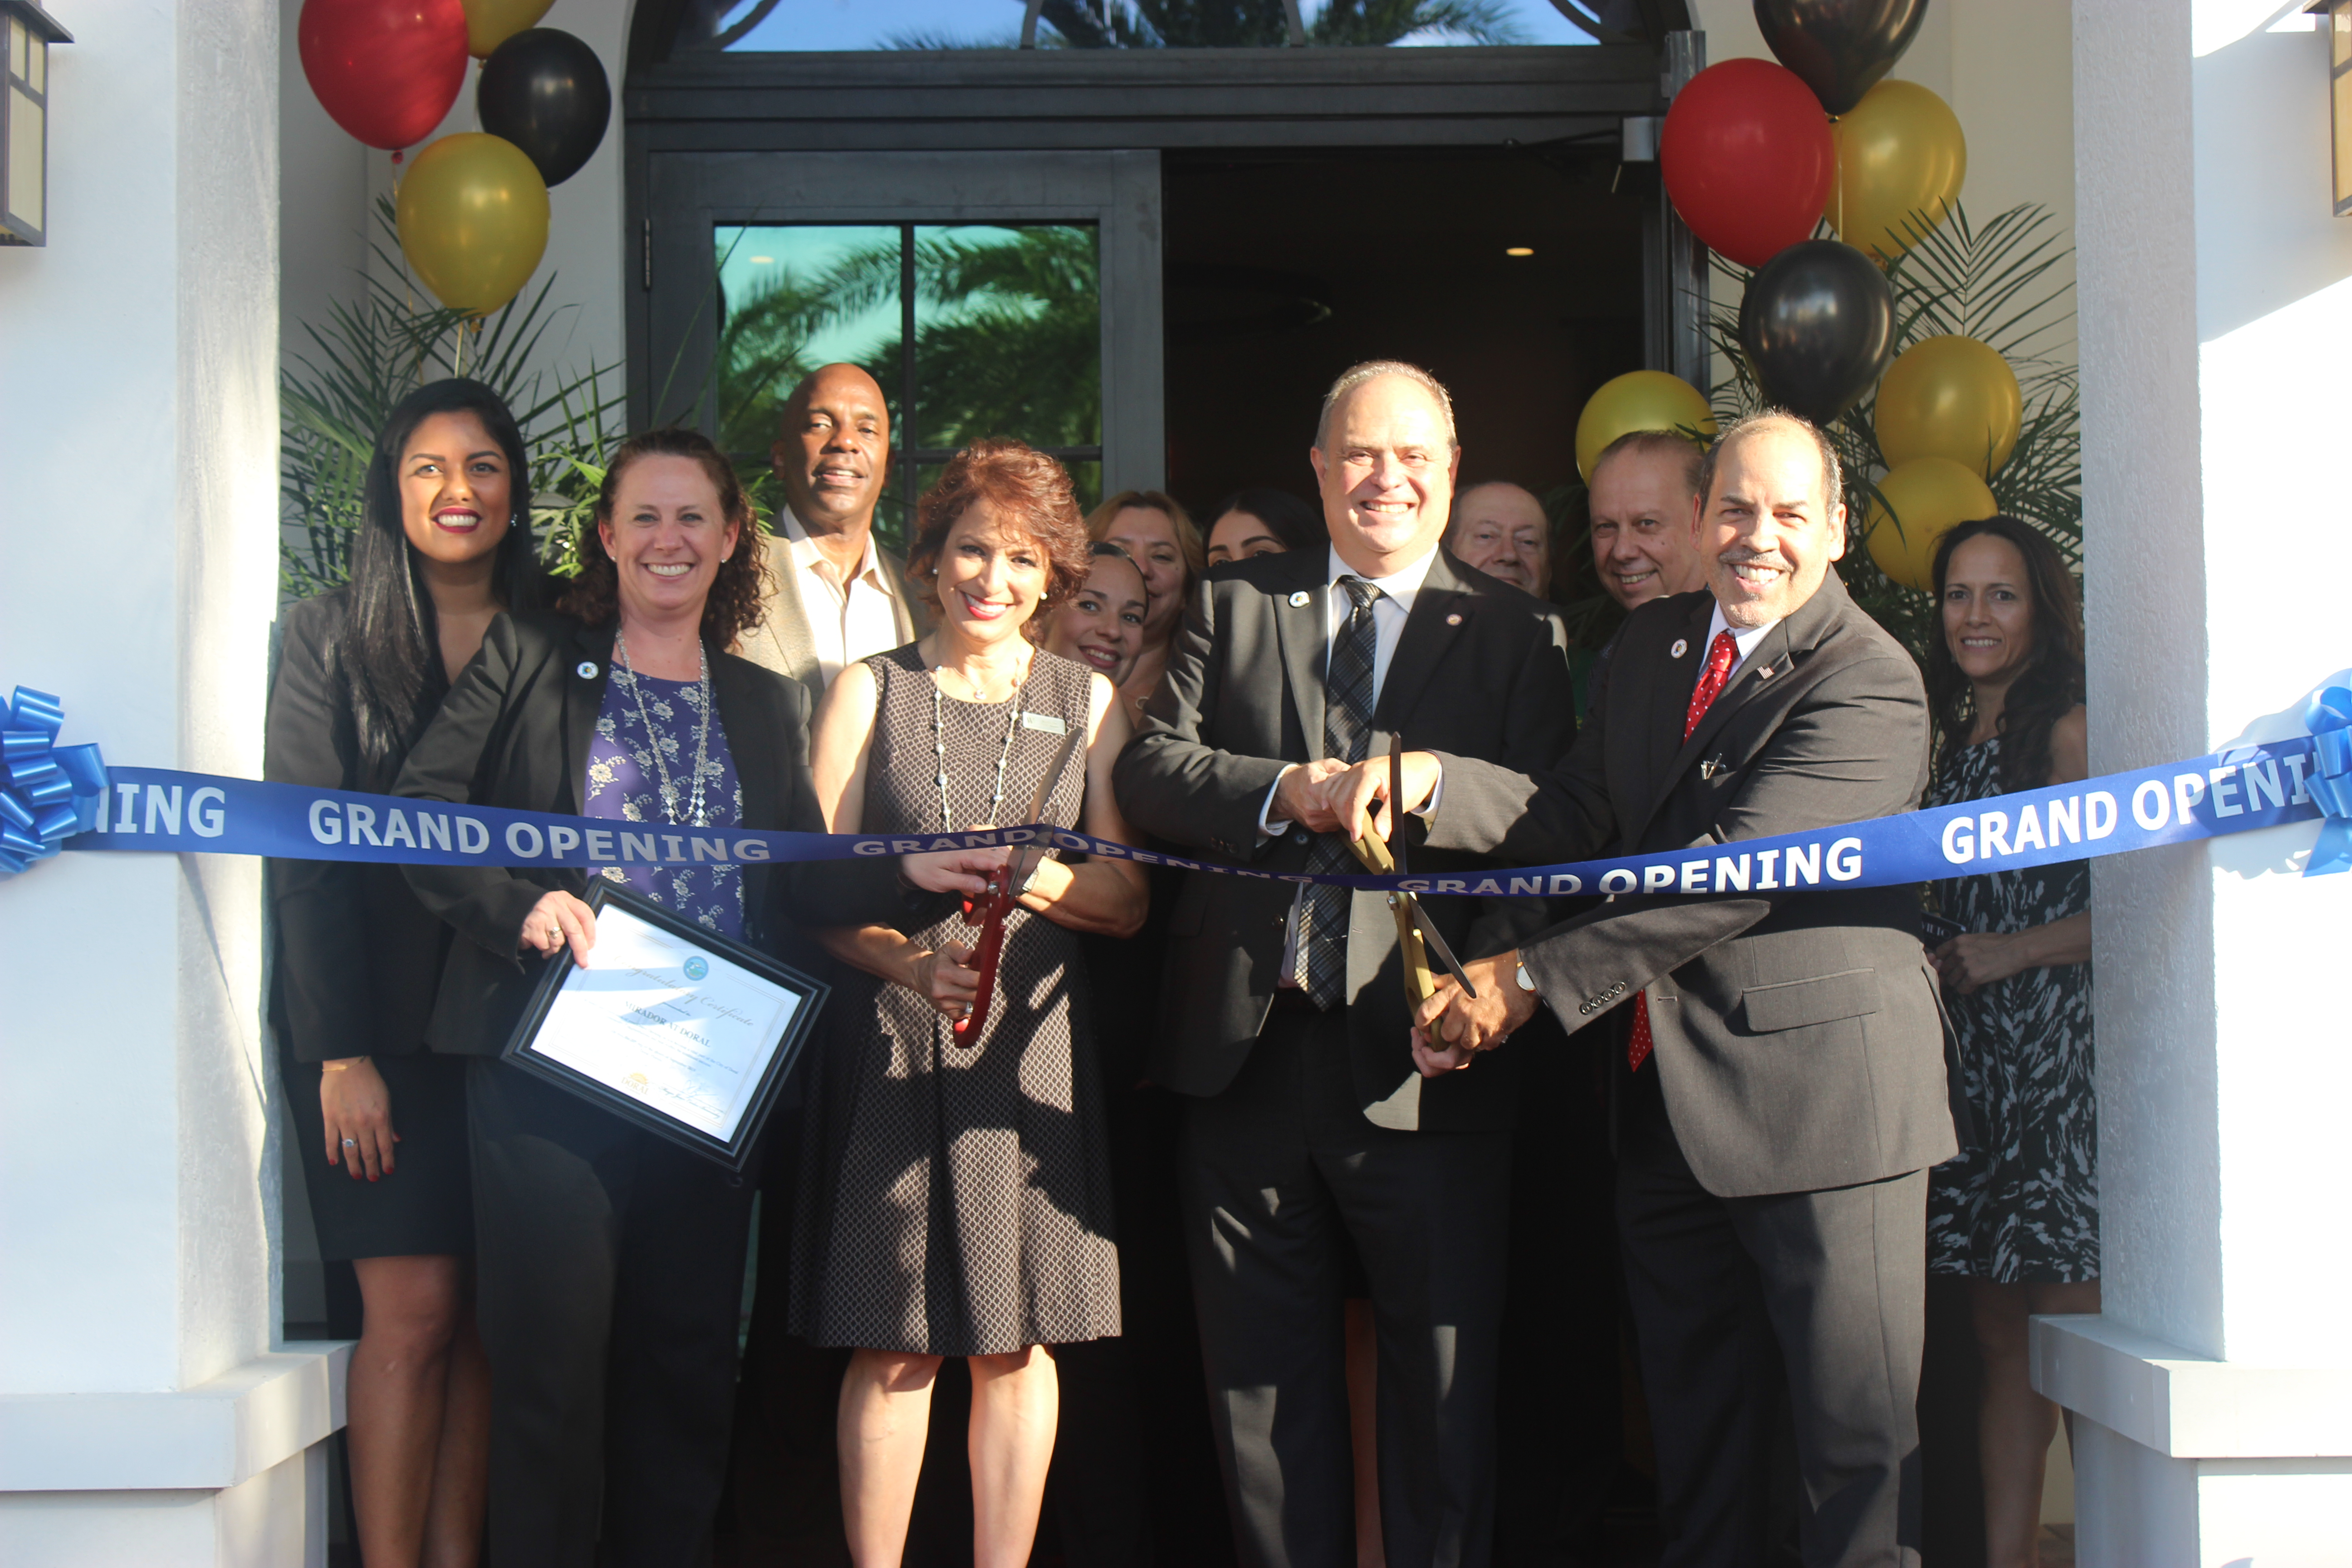 Doral Chamber of Commerce introduces Mirador Apartments Grand Opening.